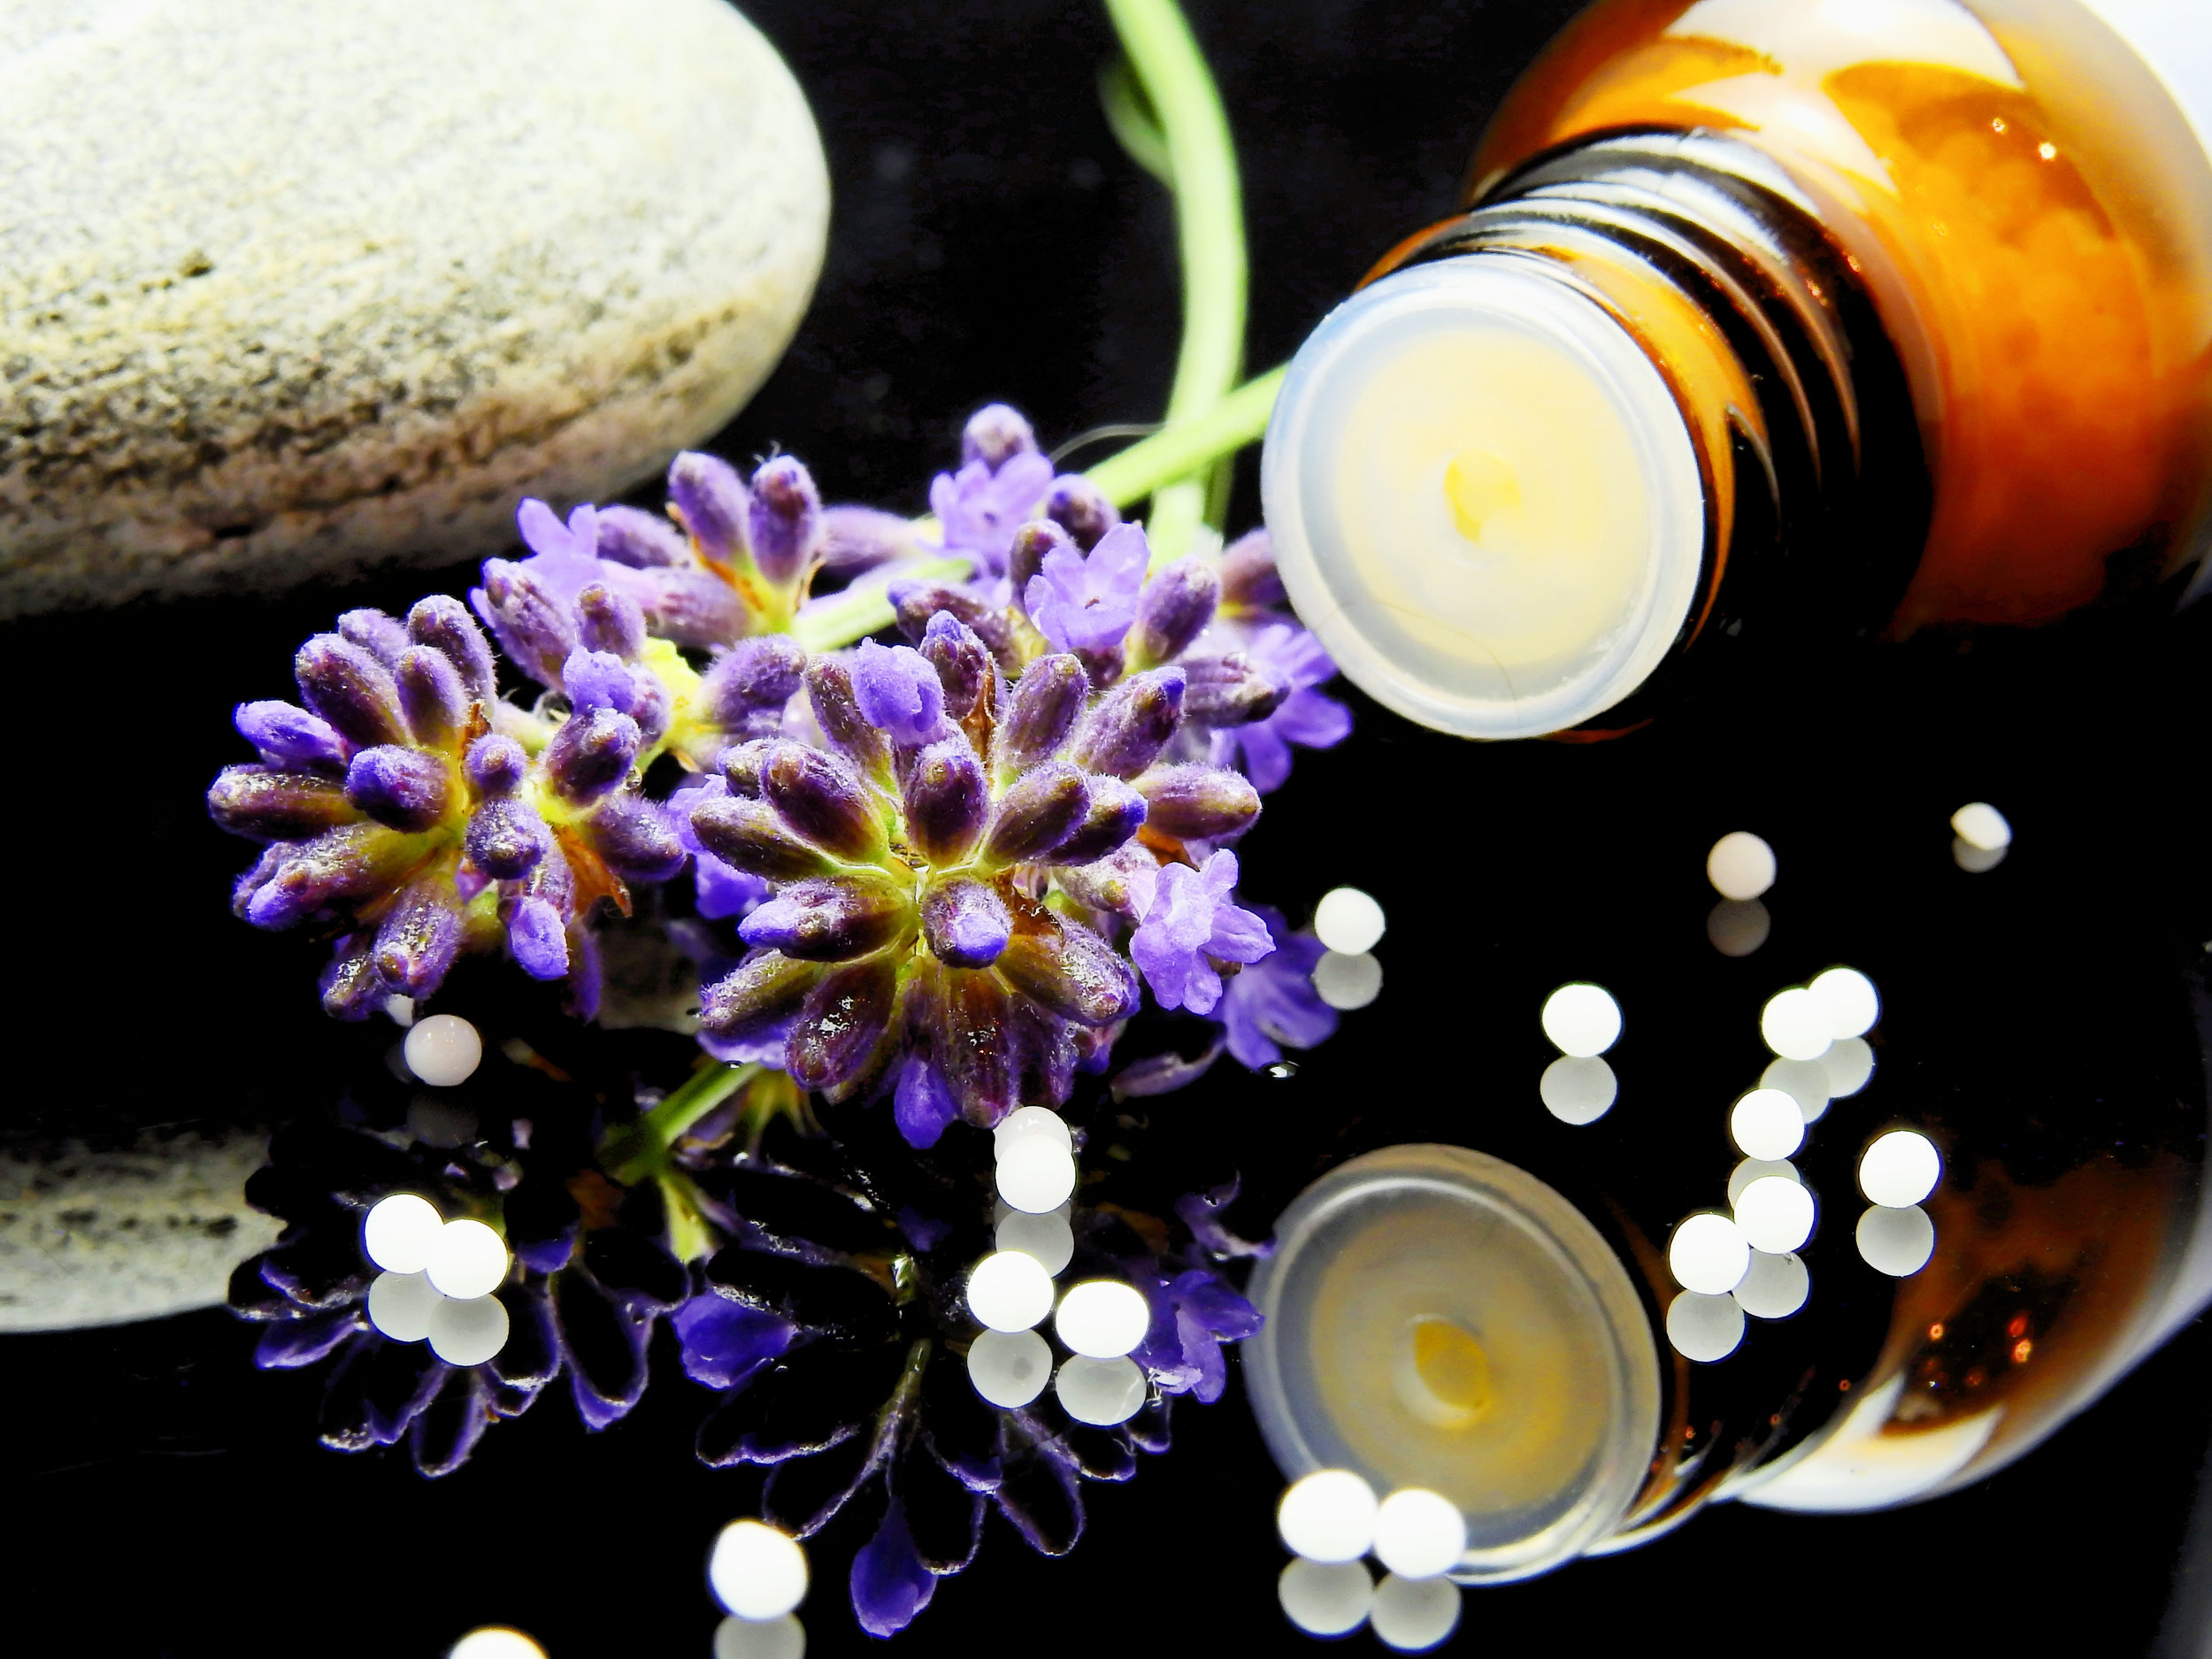 Naturopathy - Initial consultation 1-1.5 hours $115Follow up one hour $95Follow up half hour $50